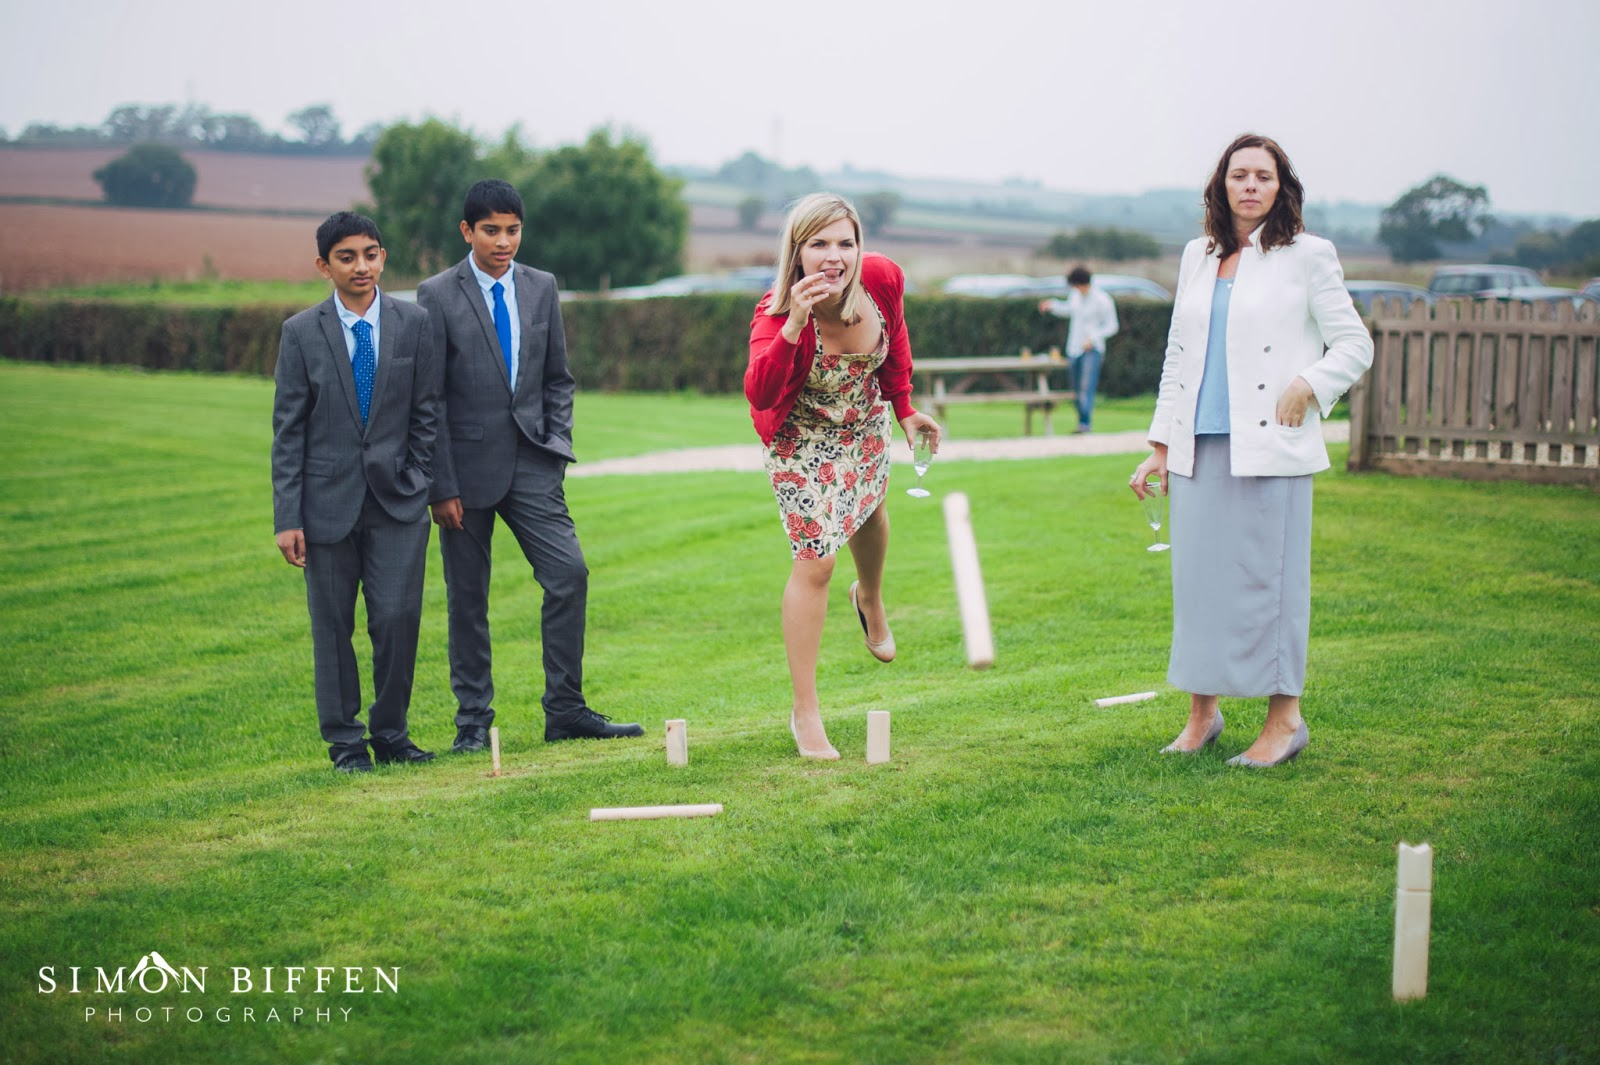 Garden games at Quantock lakes wedding